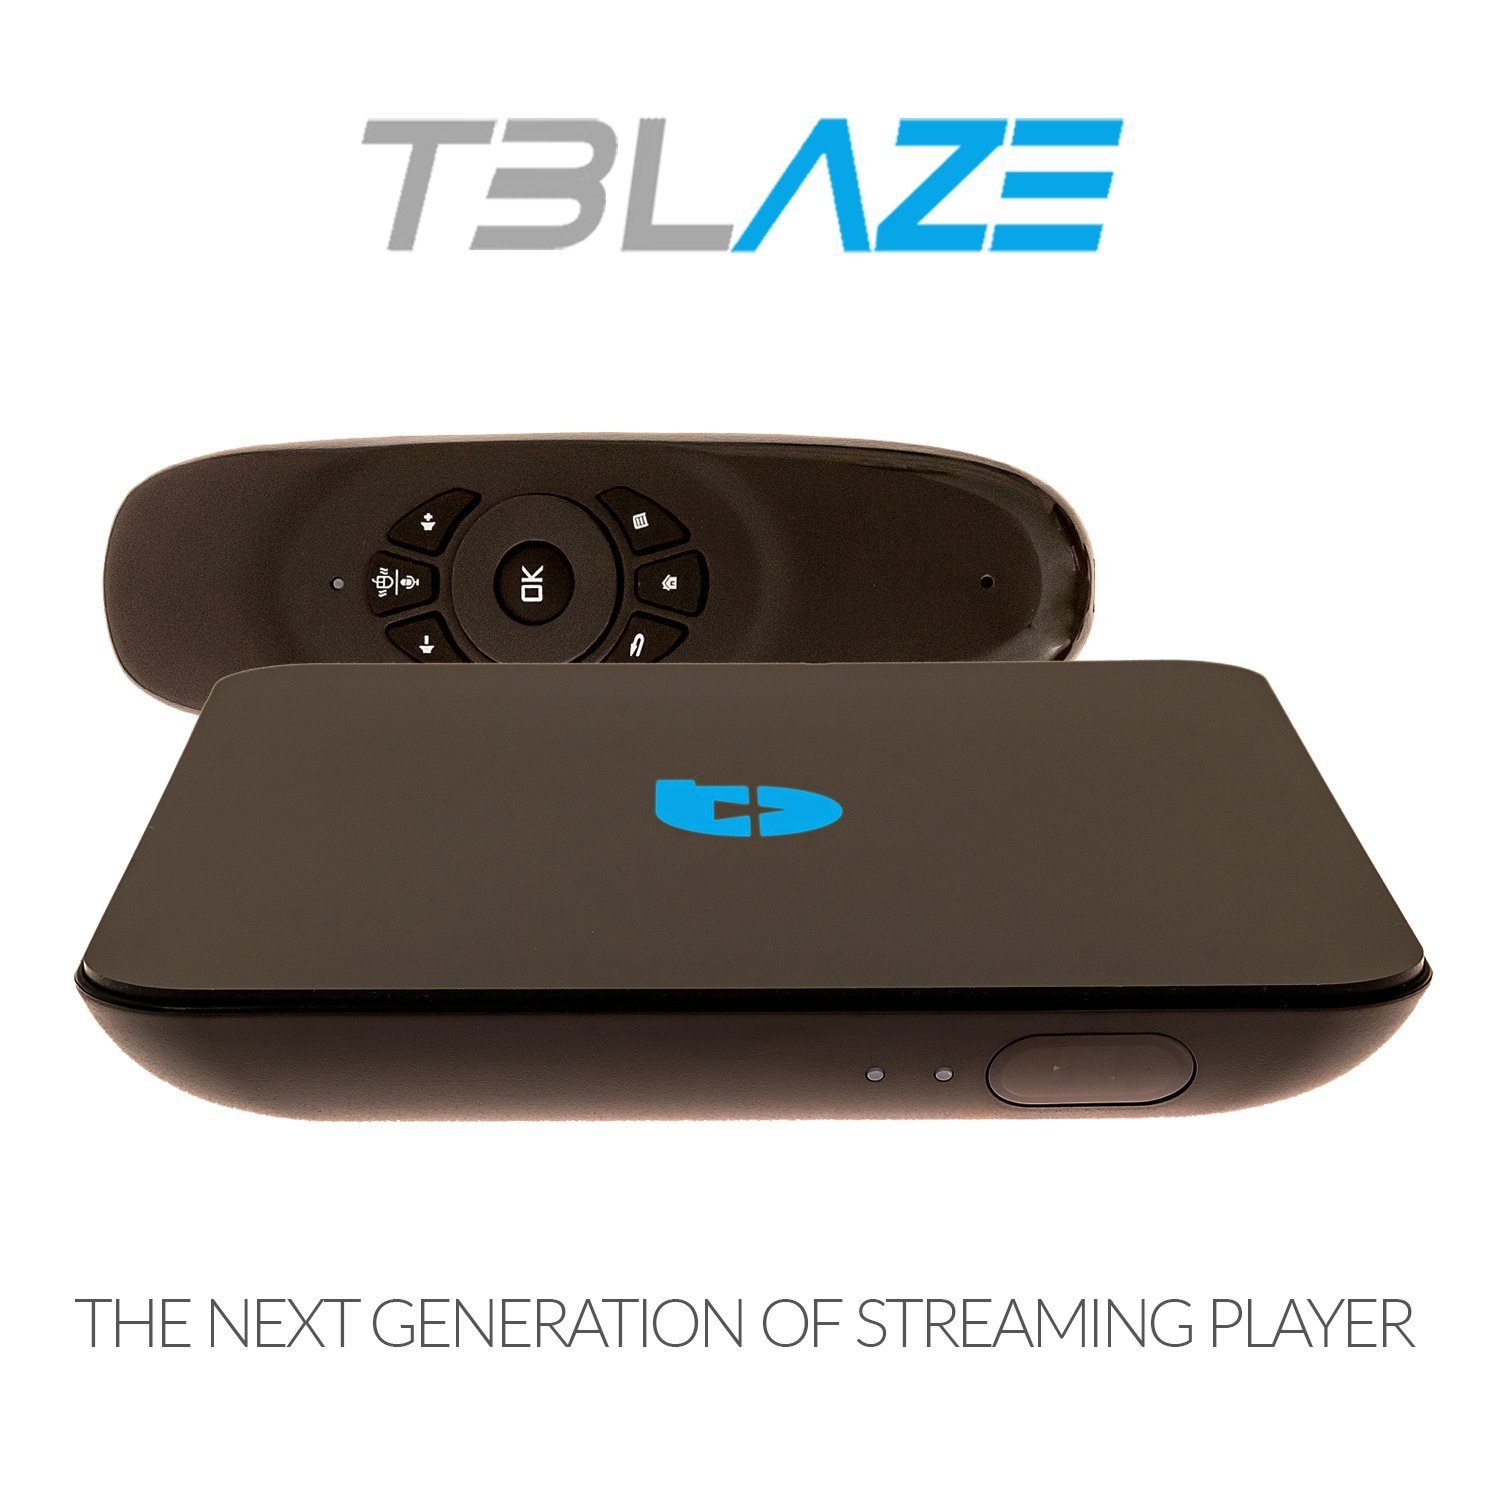 Tblaze Streaming Media Player & Android Smart TV Box With New